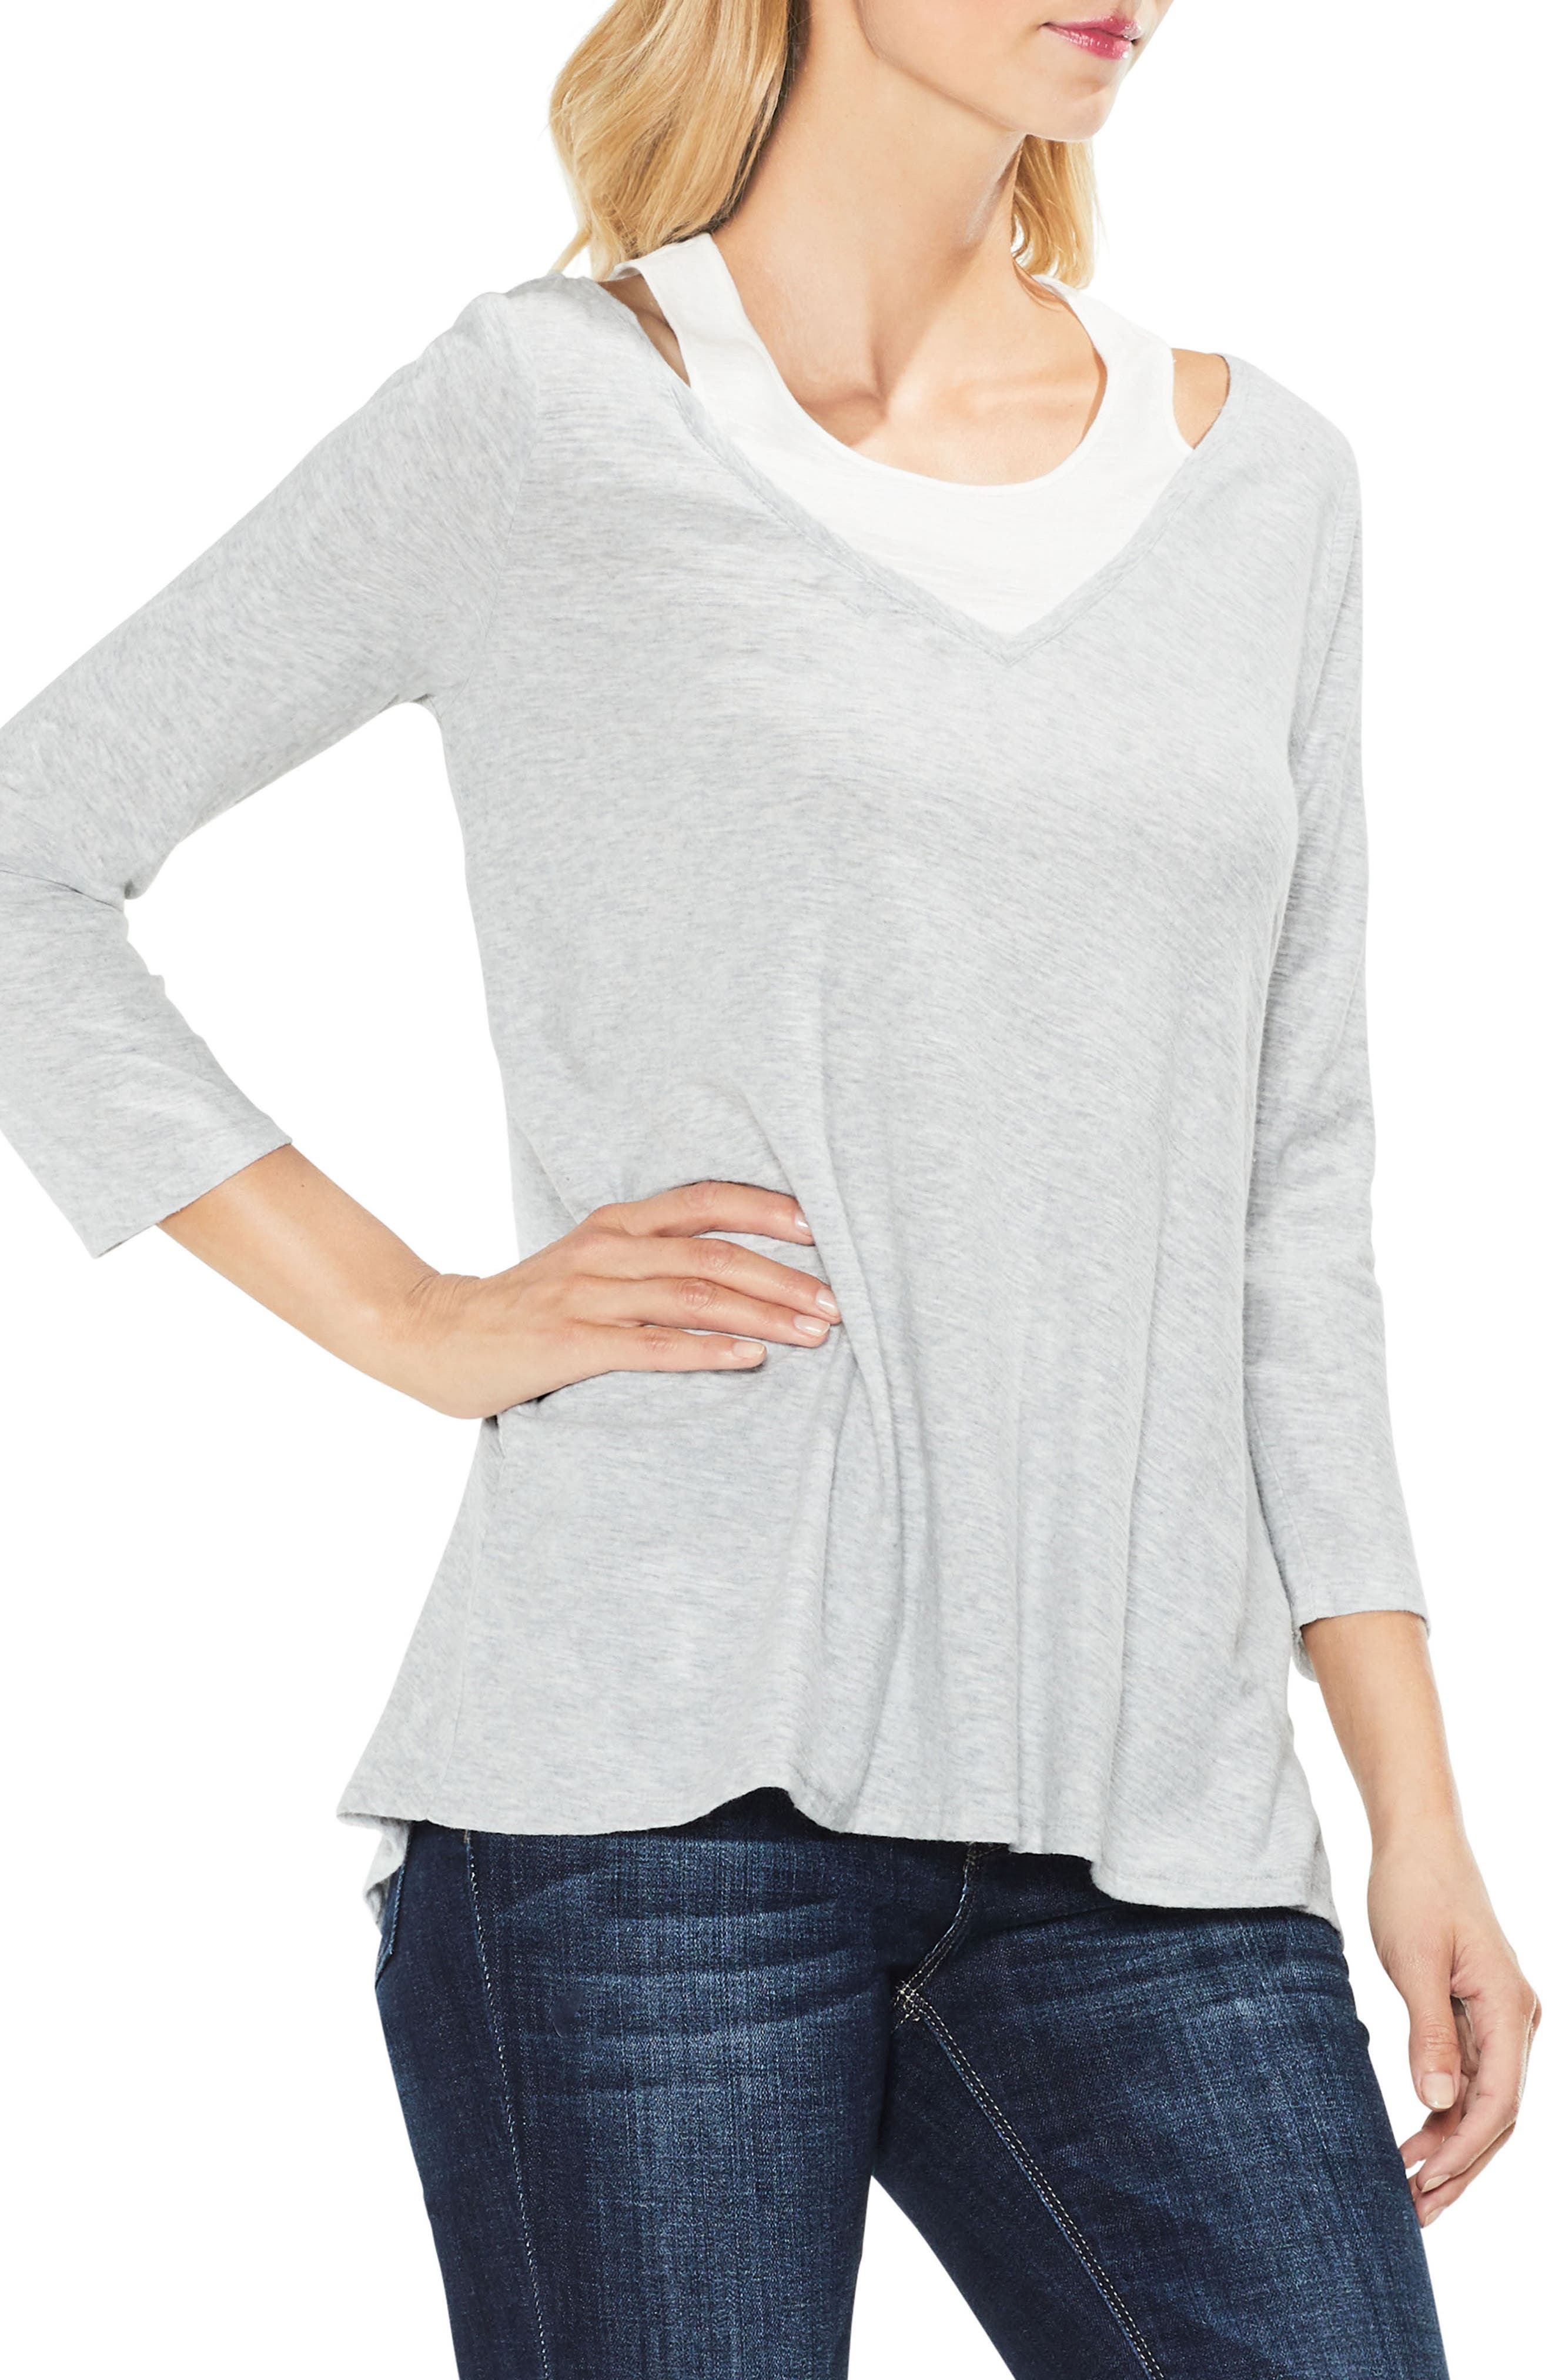 Main Image - Two by Vince Camuto Layered Top